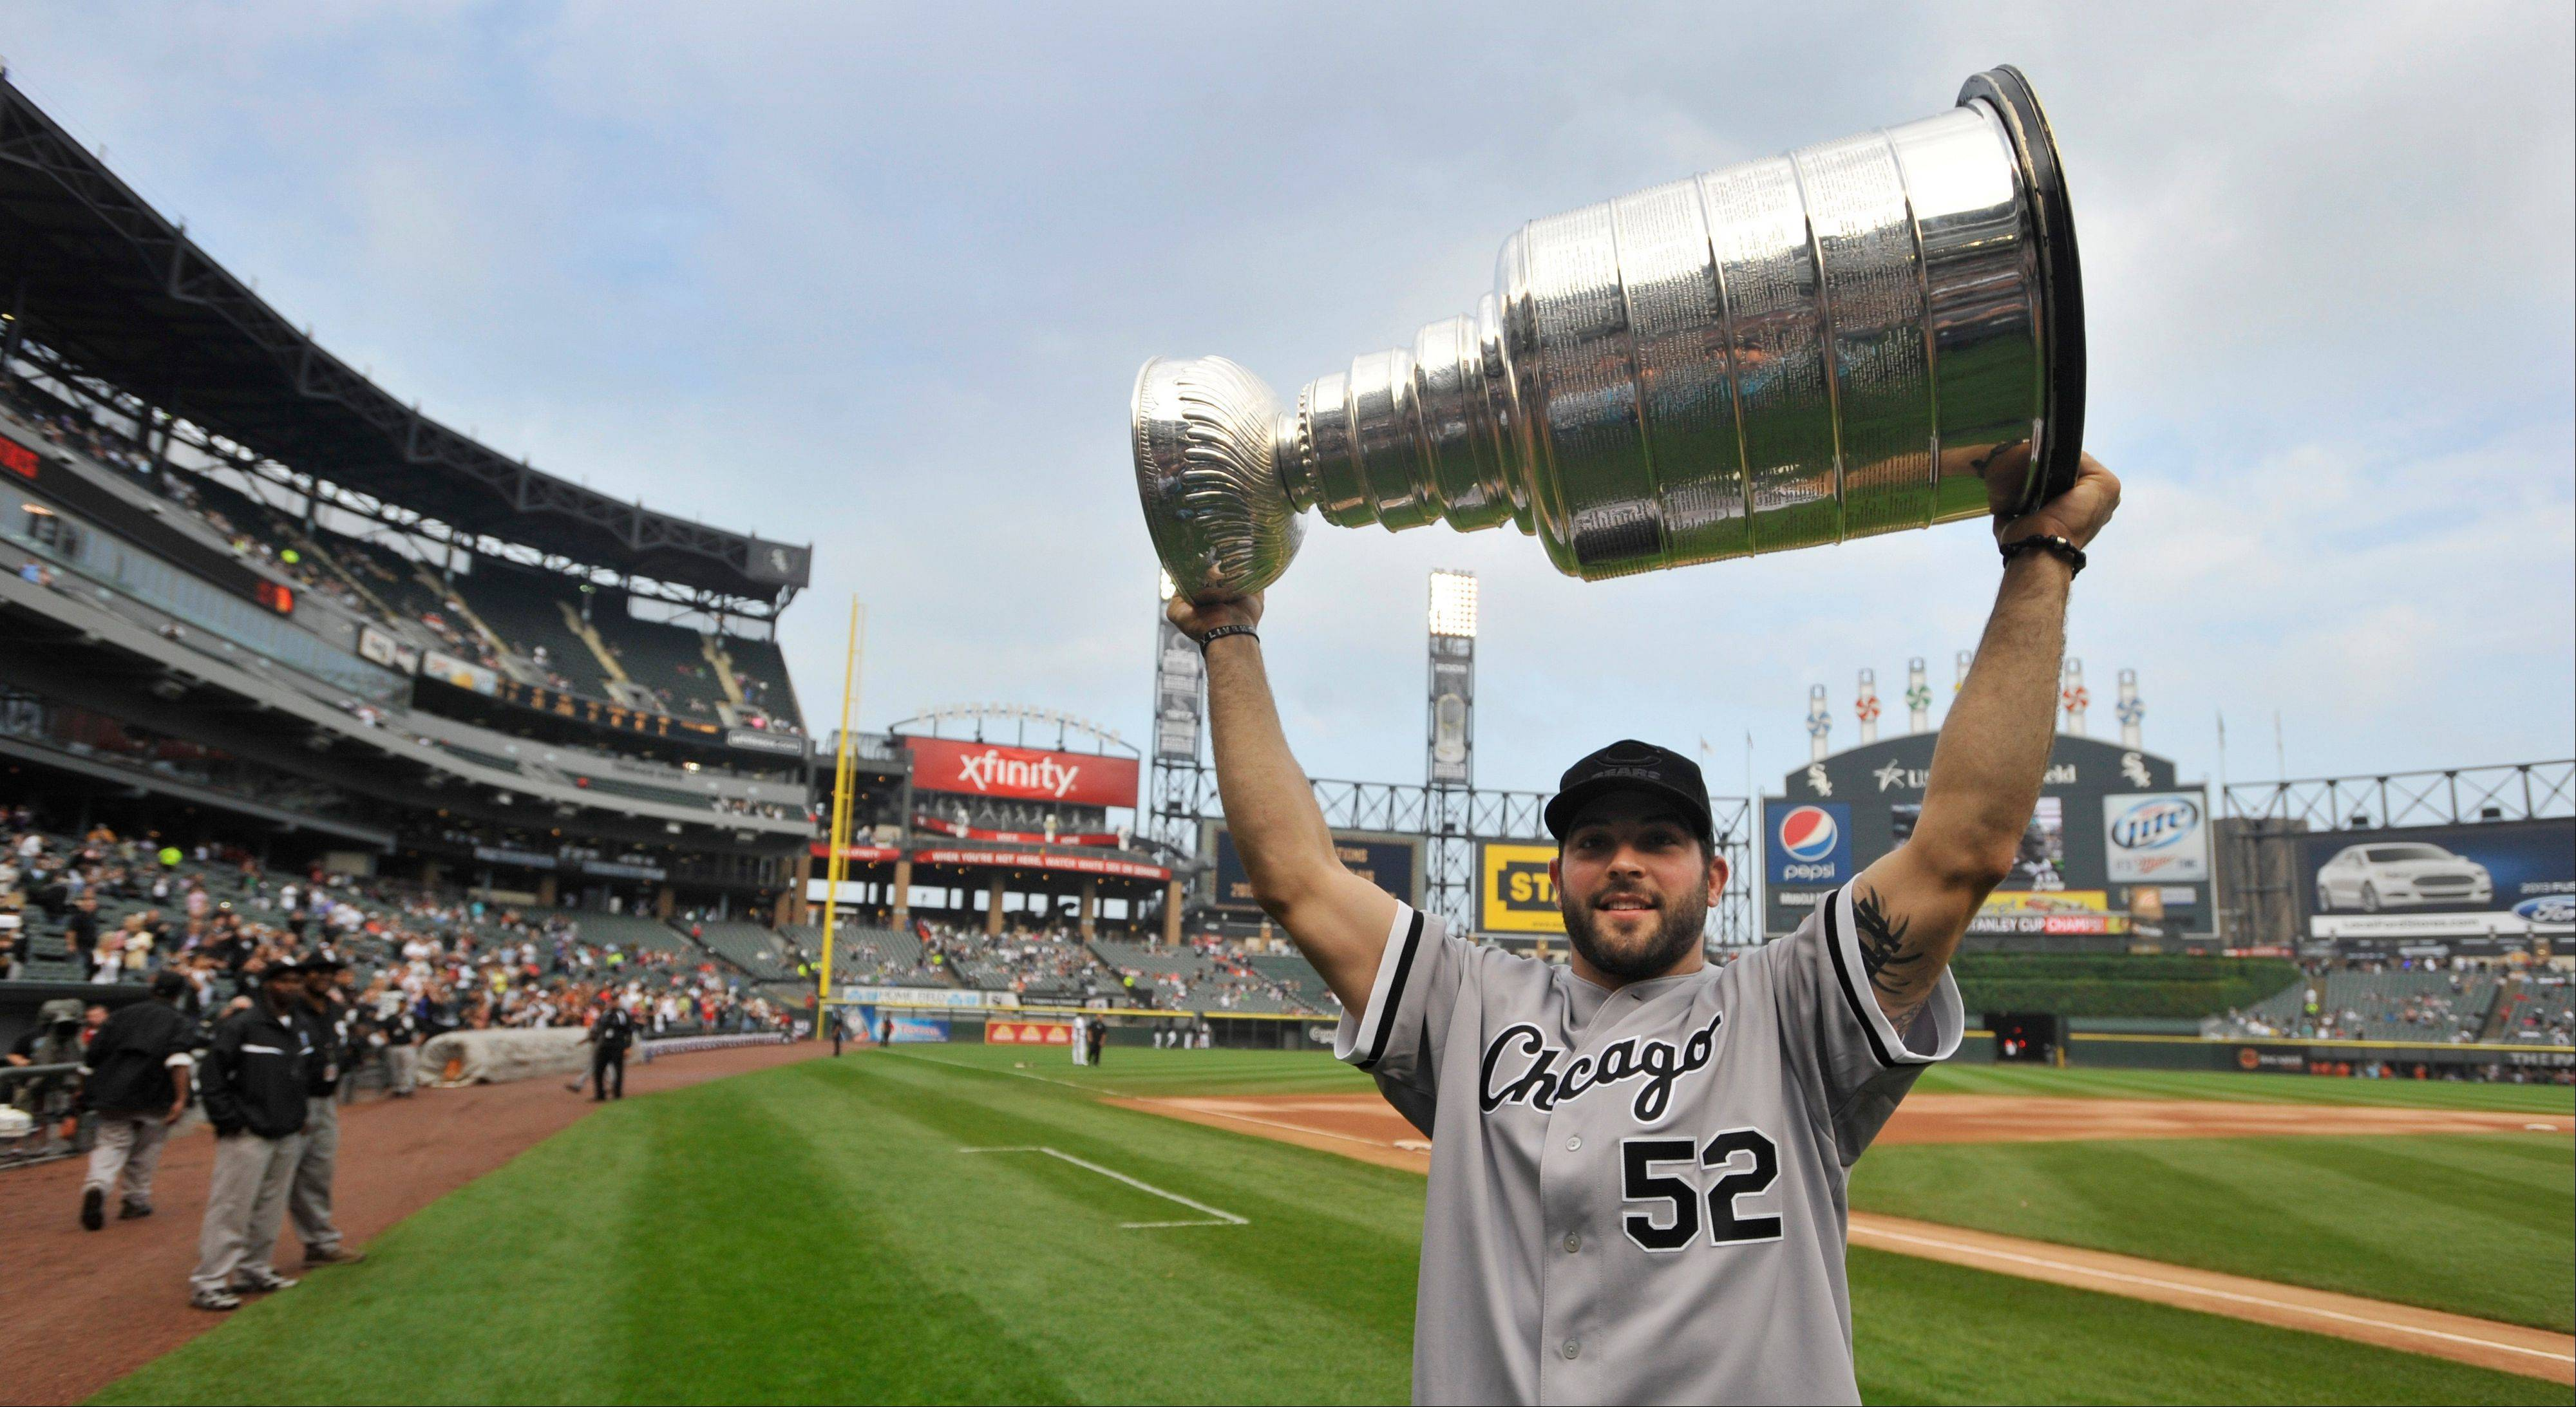 Davis hits 32nd homer, but Cup the biggest hit at Sox game